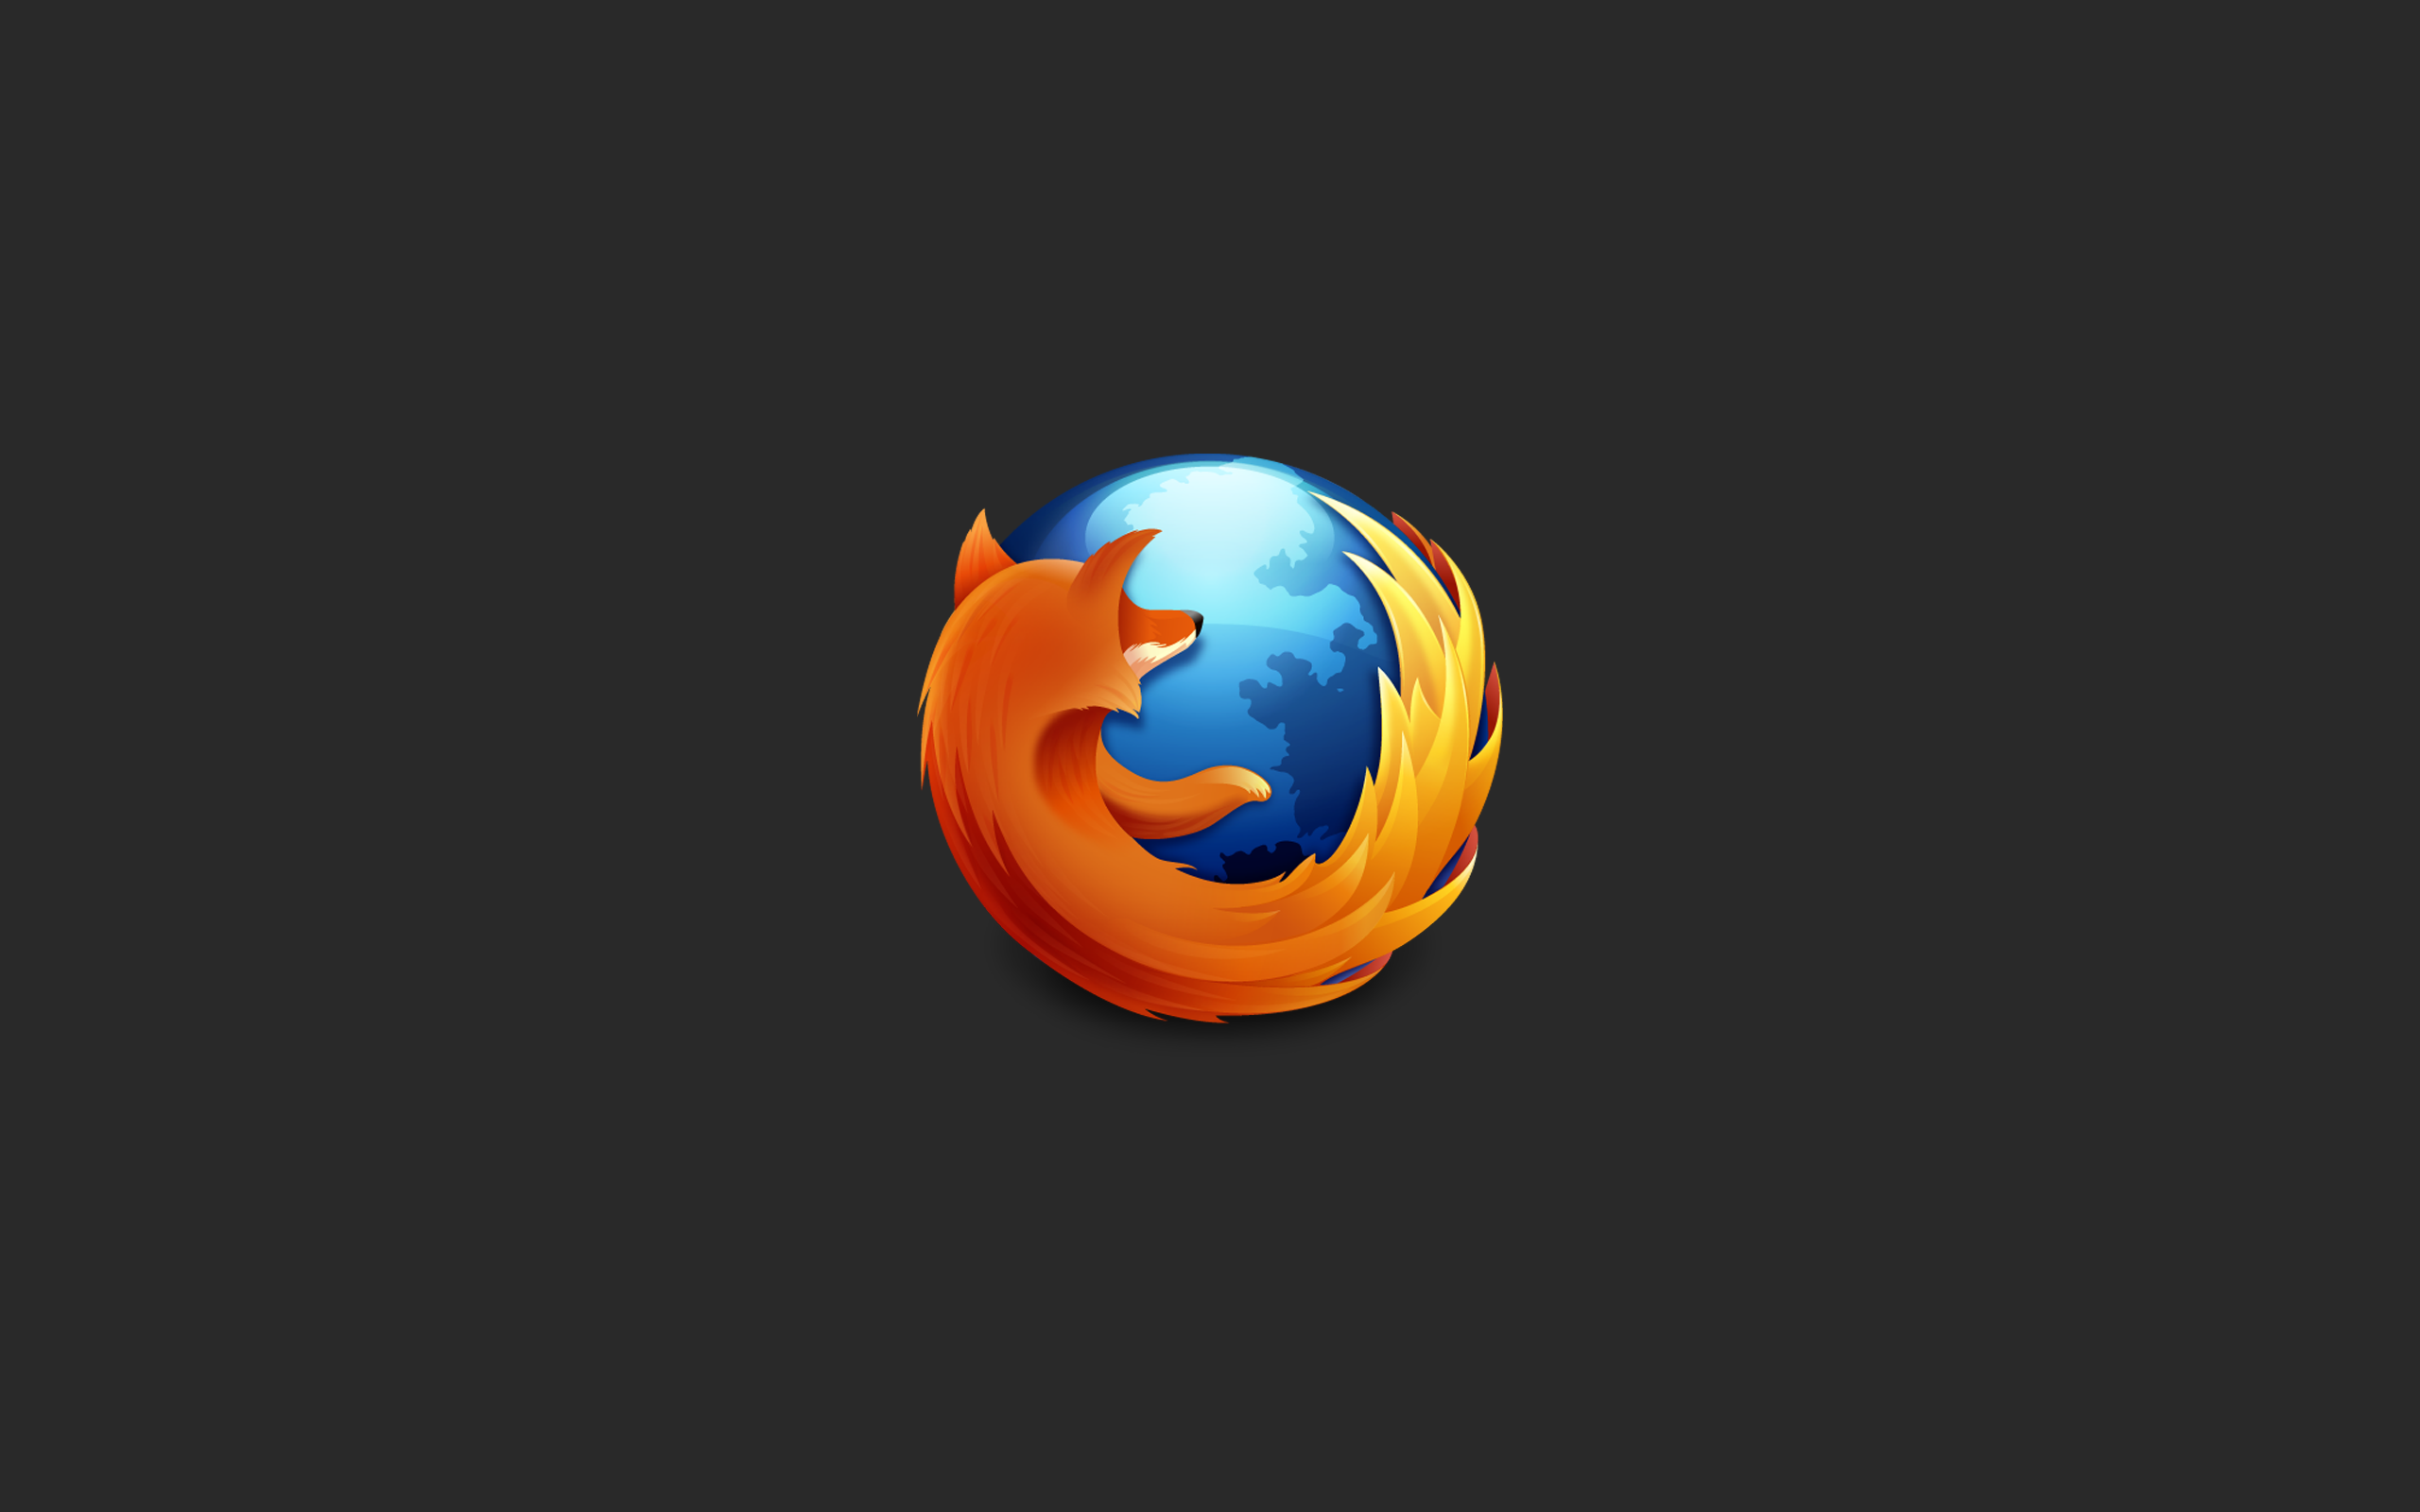 mozilla firefox hd background wallpaper 2228